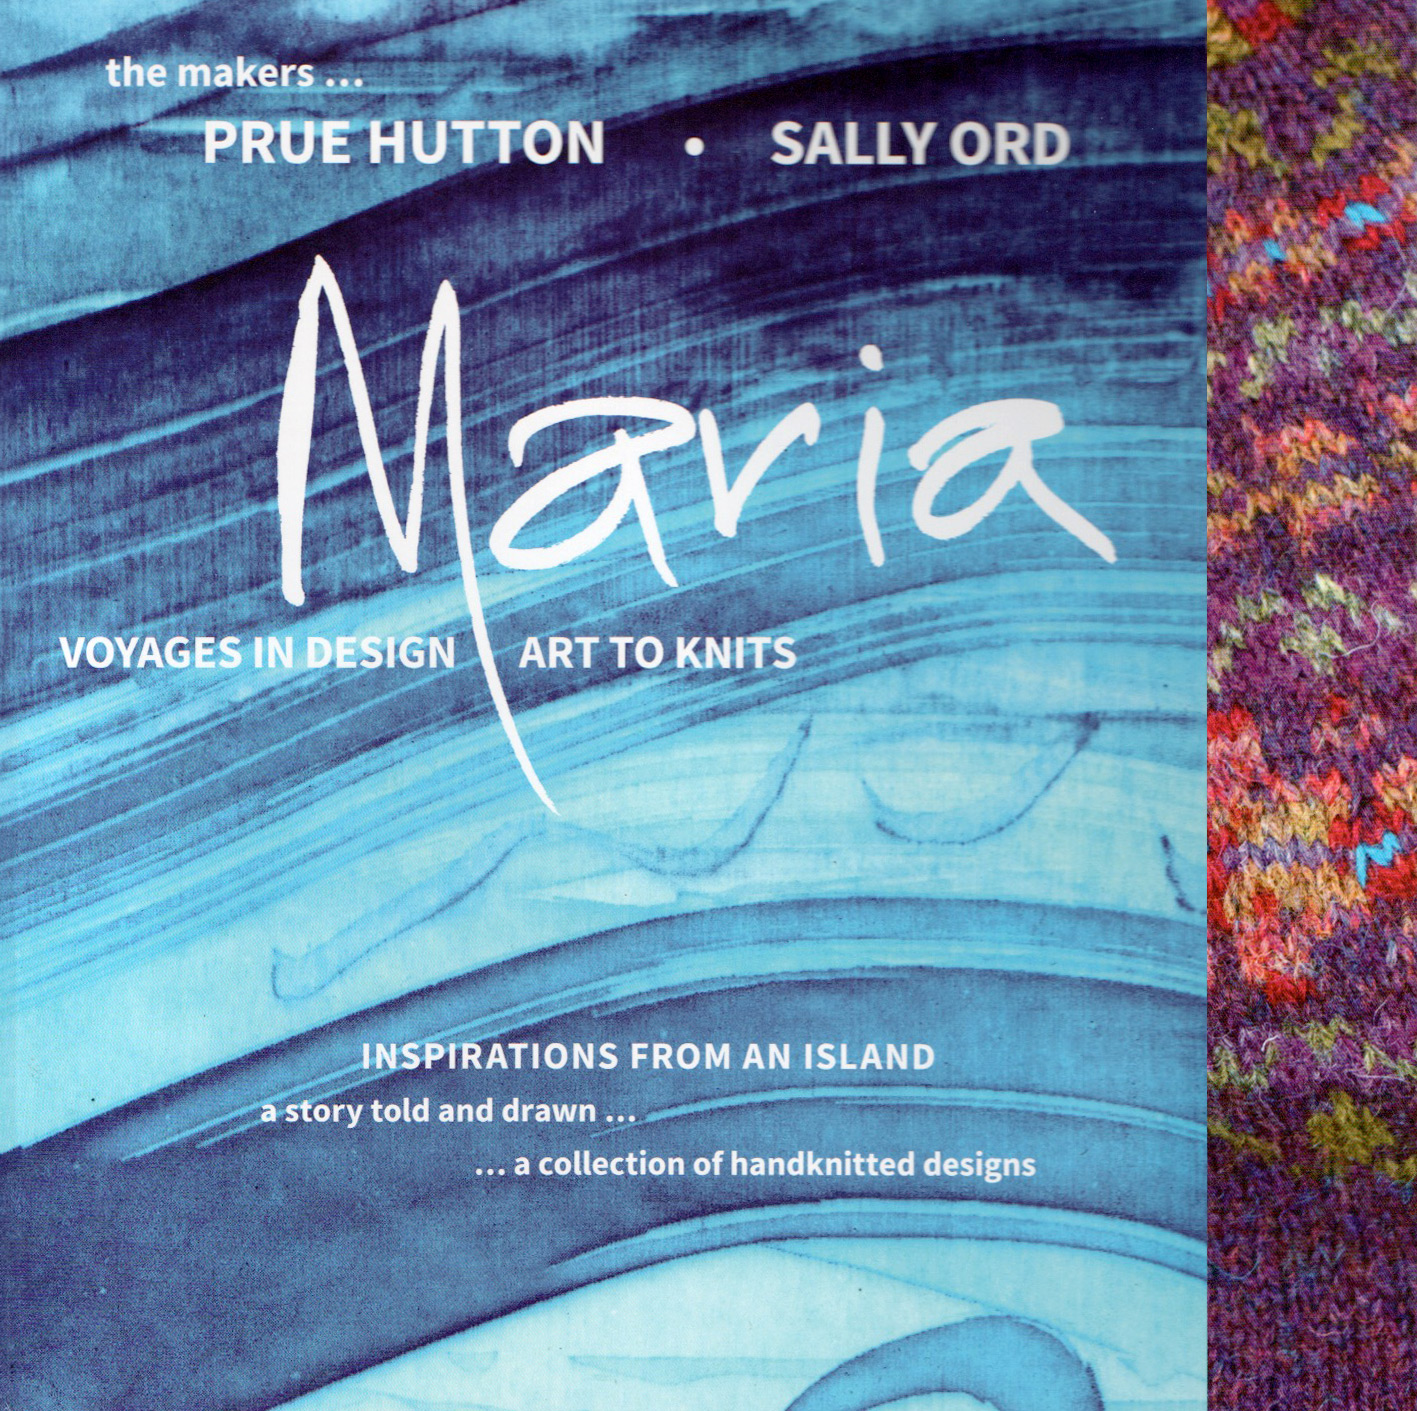 Maria - Voyages in Design, Art to Knits